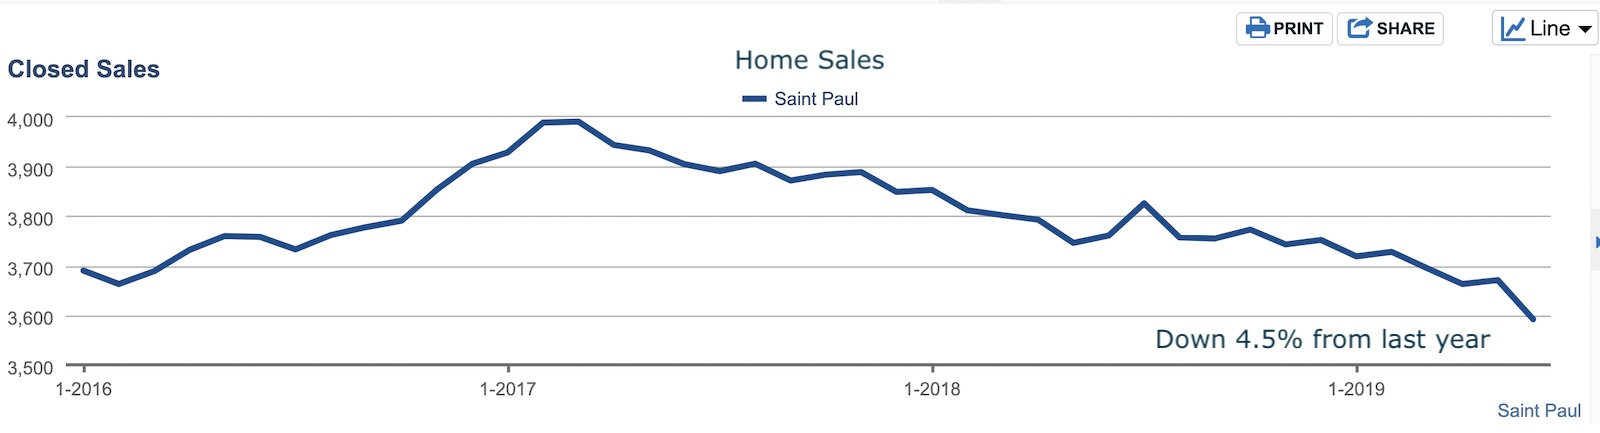 graph of home sales